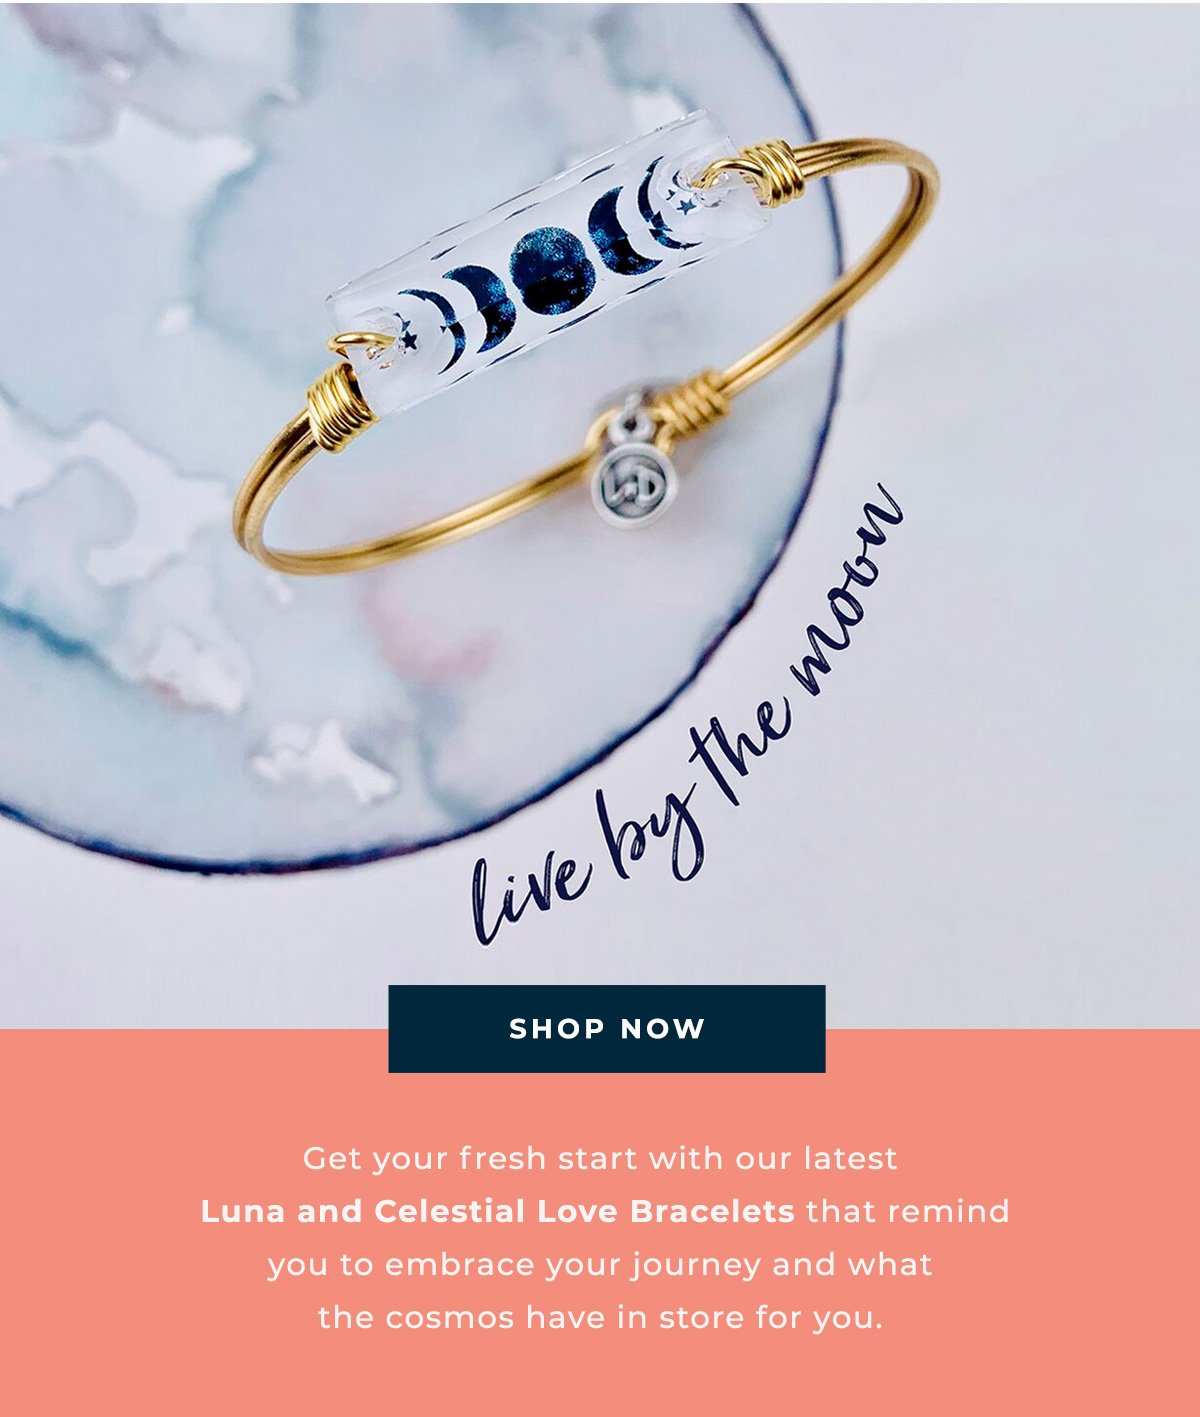 live by the moon | SHOP NOW | Get your fresh start with our latest Luna and Celestial Love Bracelets that remind you to embrace your journey and what the cosmos have in store for you.